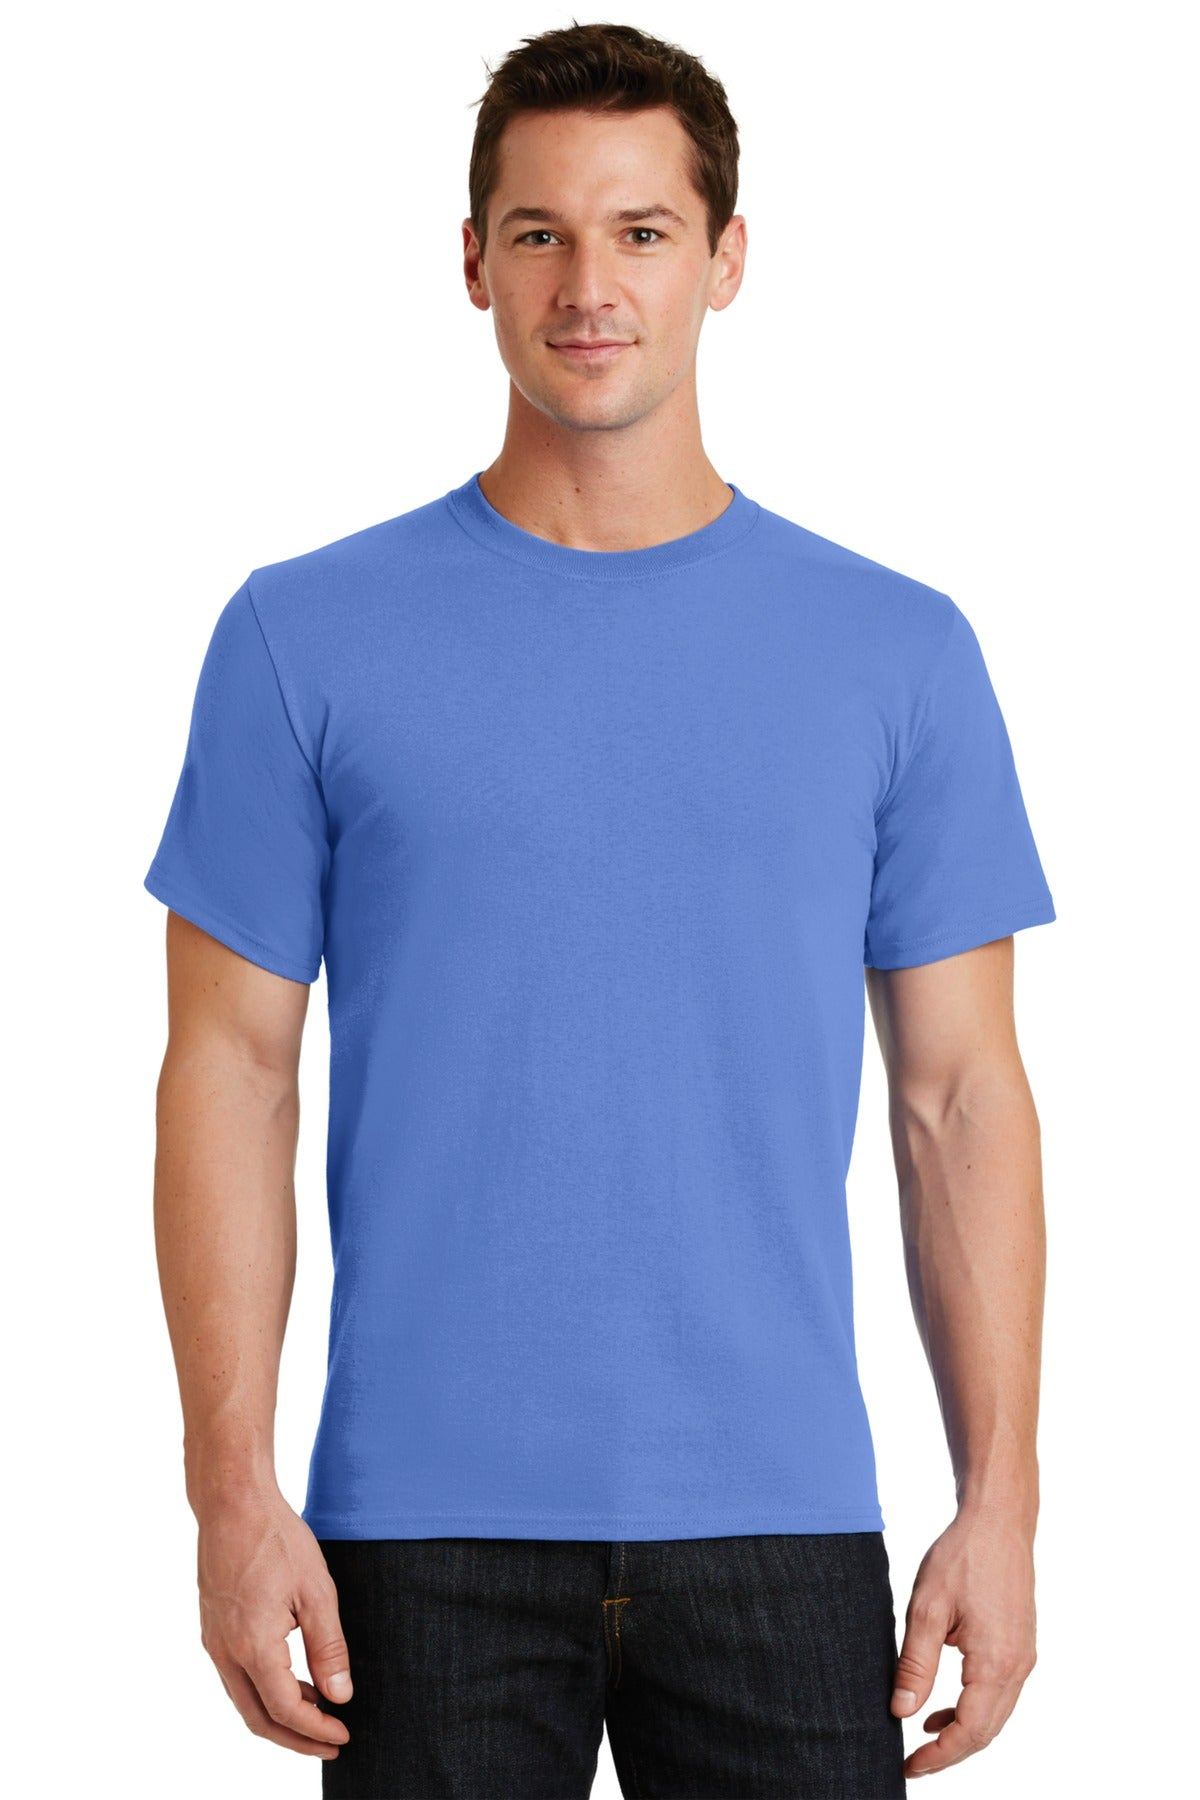 Ultramarine Blue Port & Company - Essential T-Shirt